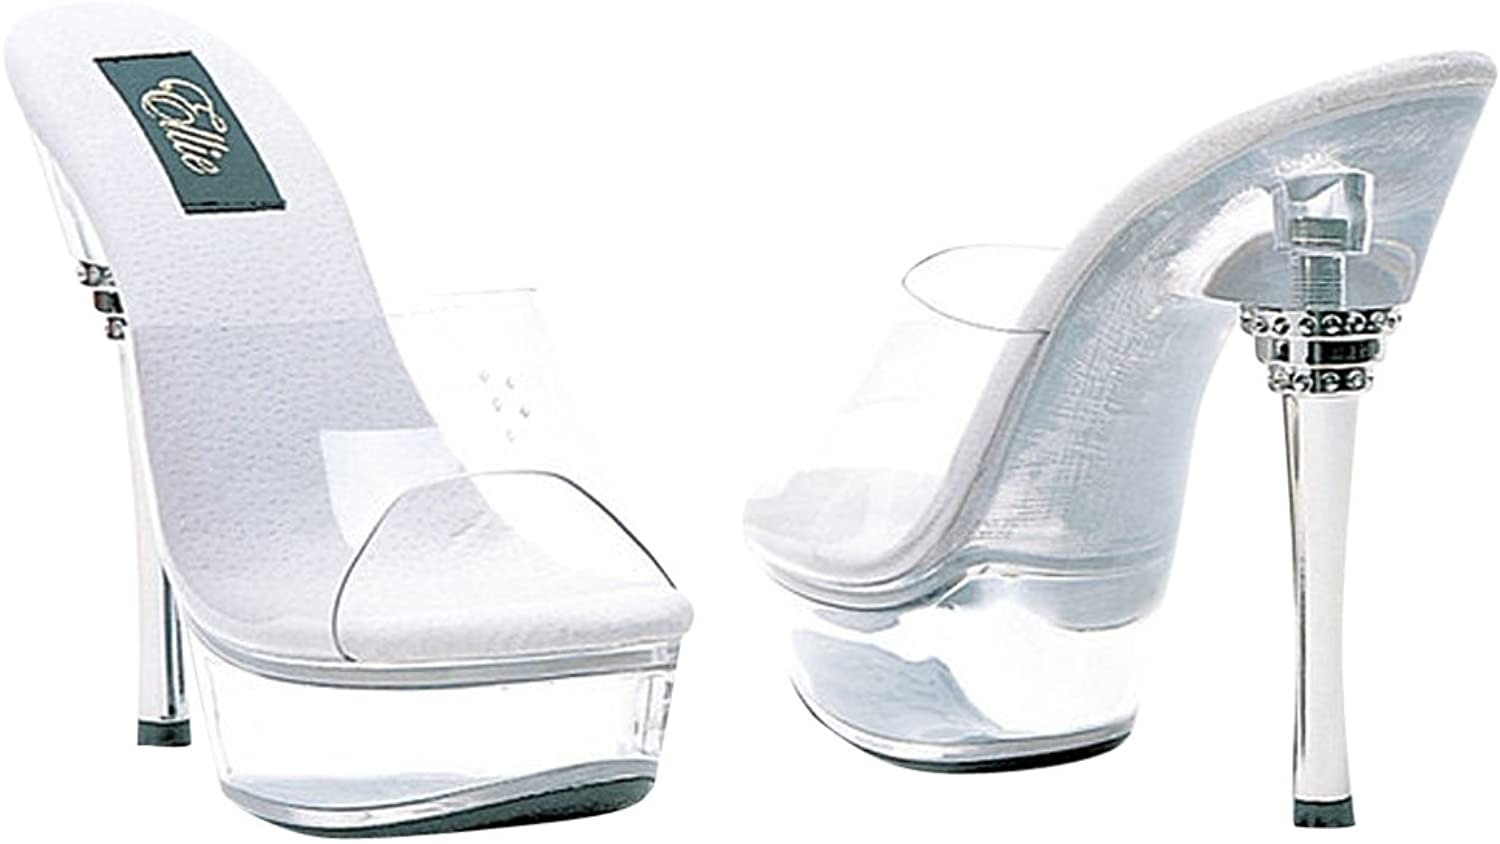 Sexy Fashions 6 Inch Clear Mule Women's Size shoes With Rhinestone Silver Metallic Heel (Clear;7)